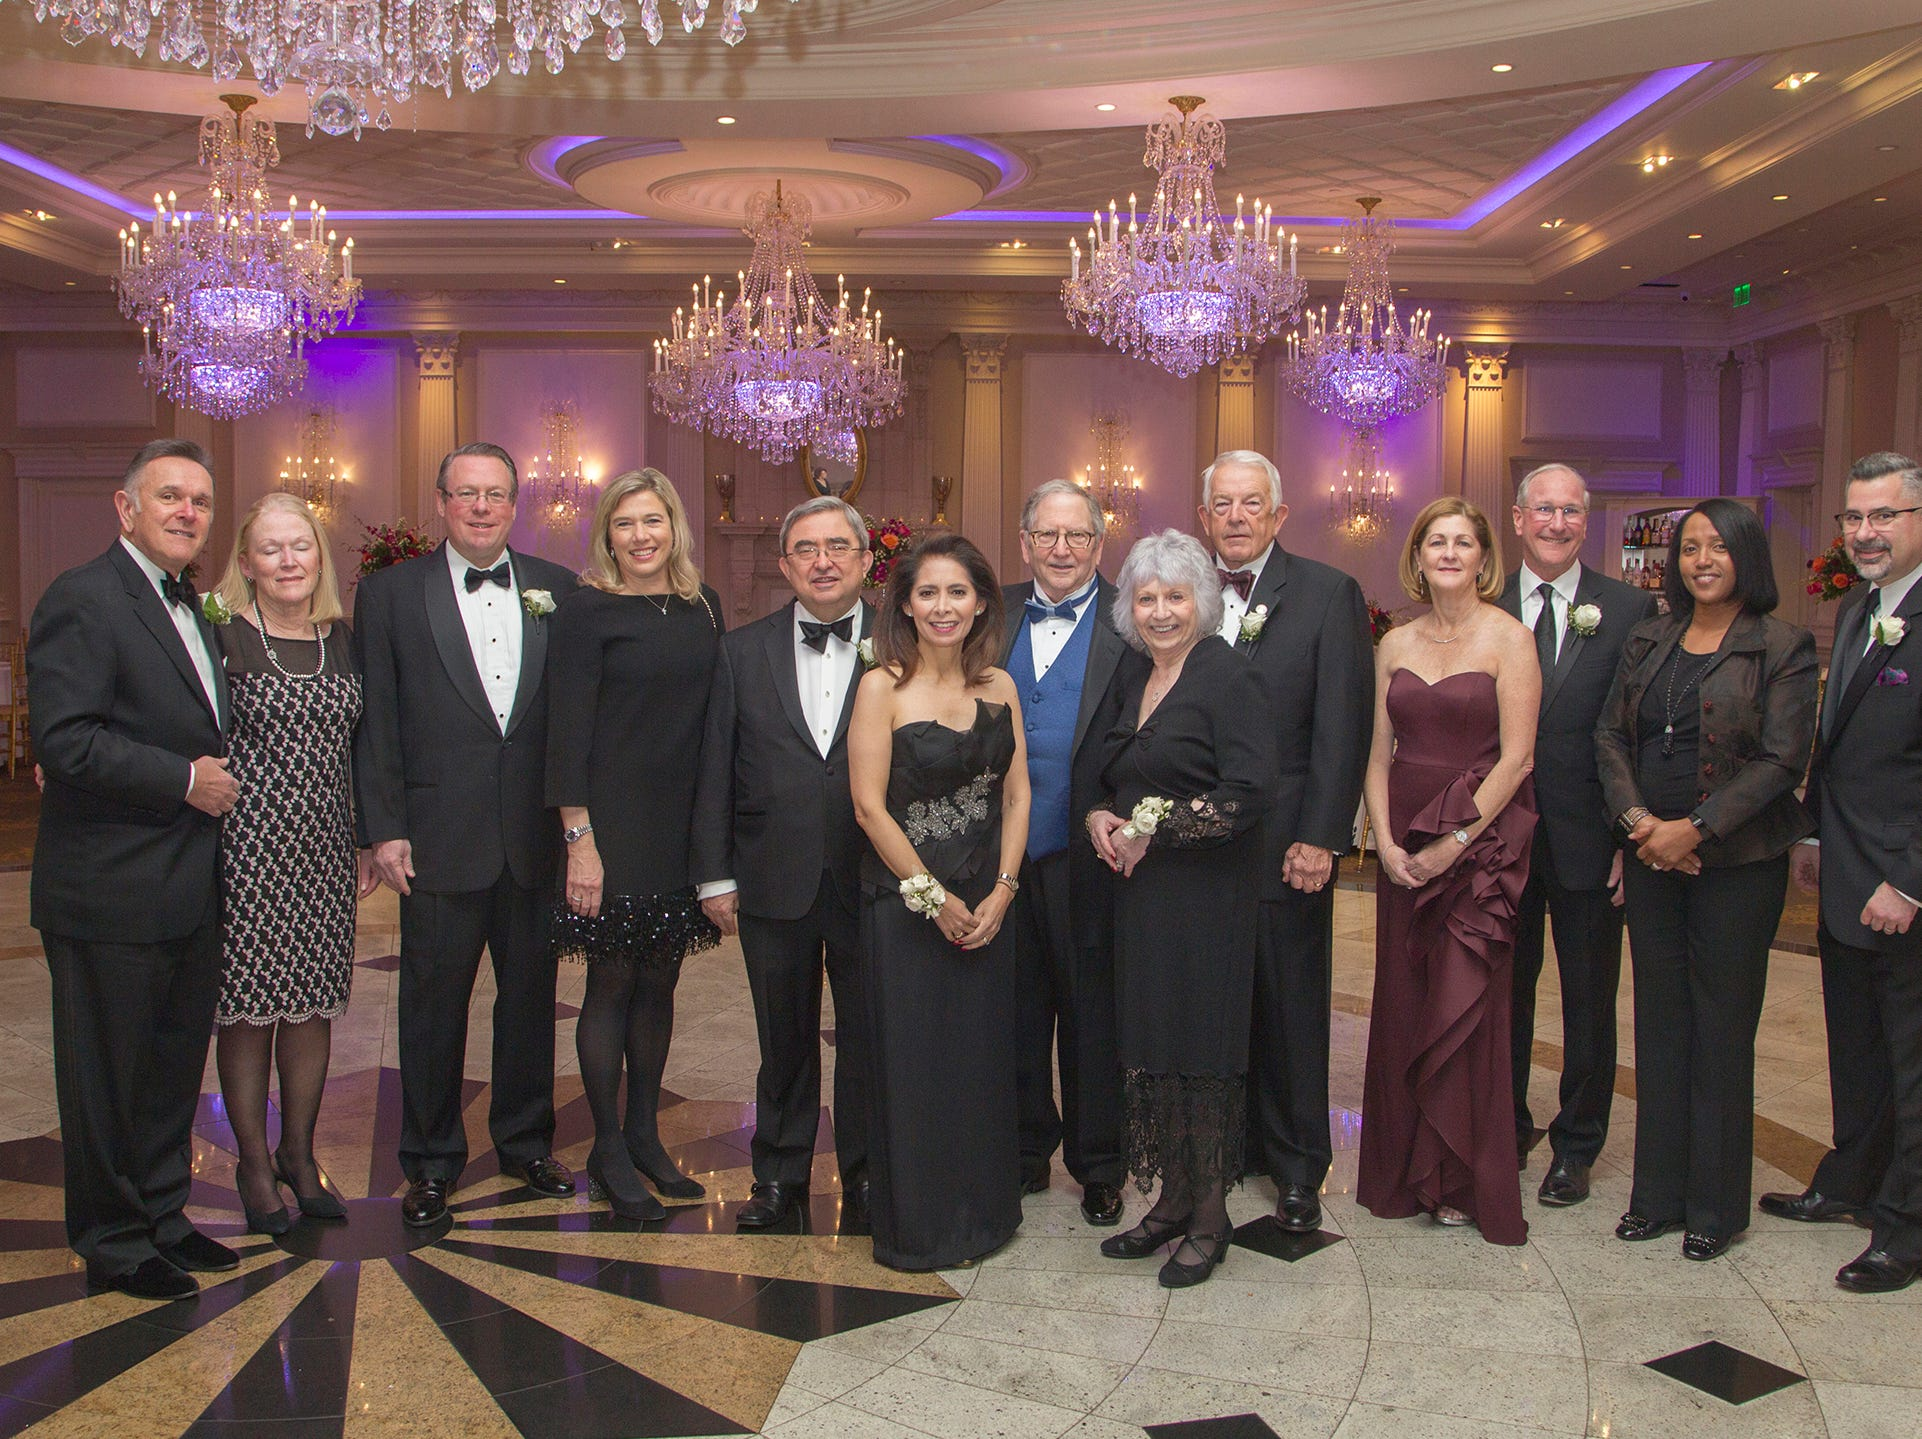 Ramapo College NJ Board of Trustees. Ramapo College held its 37th Annual Distinguished Citizens Dinner at Rockleigh Country Club. 03/02/2019